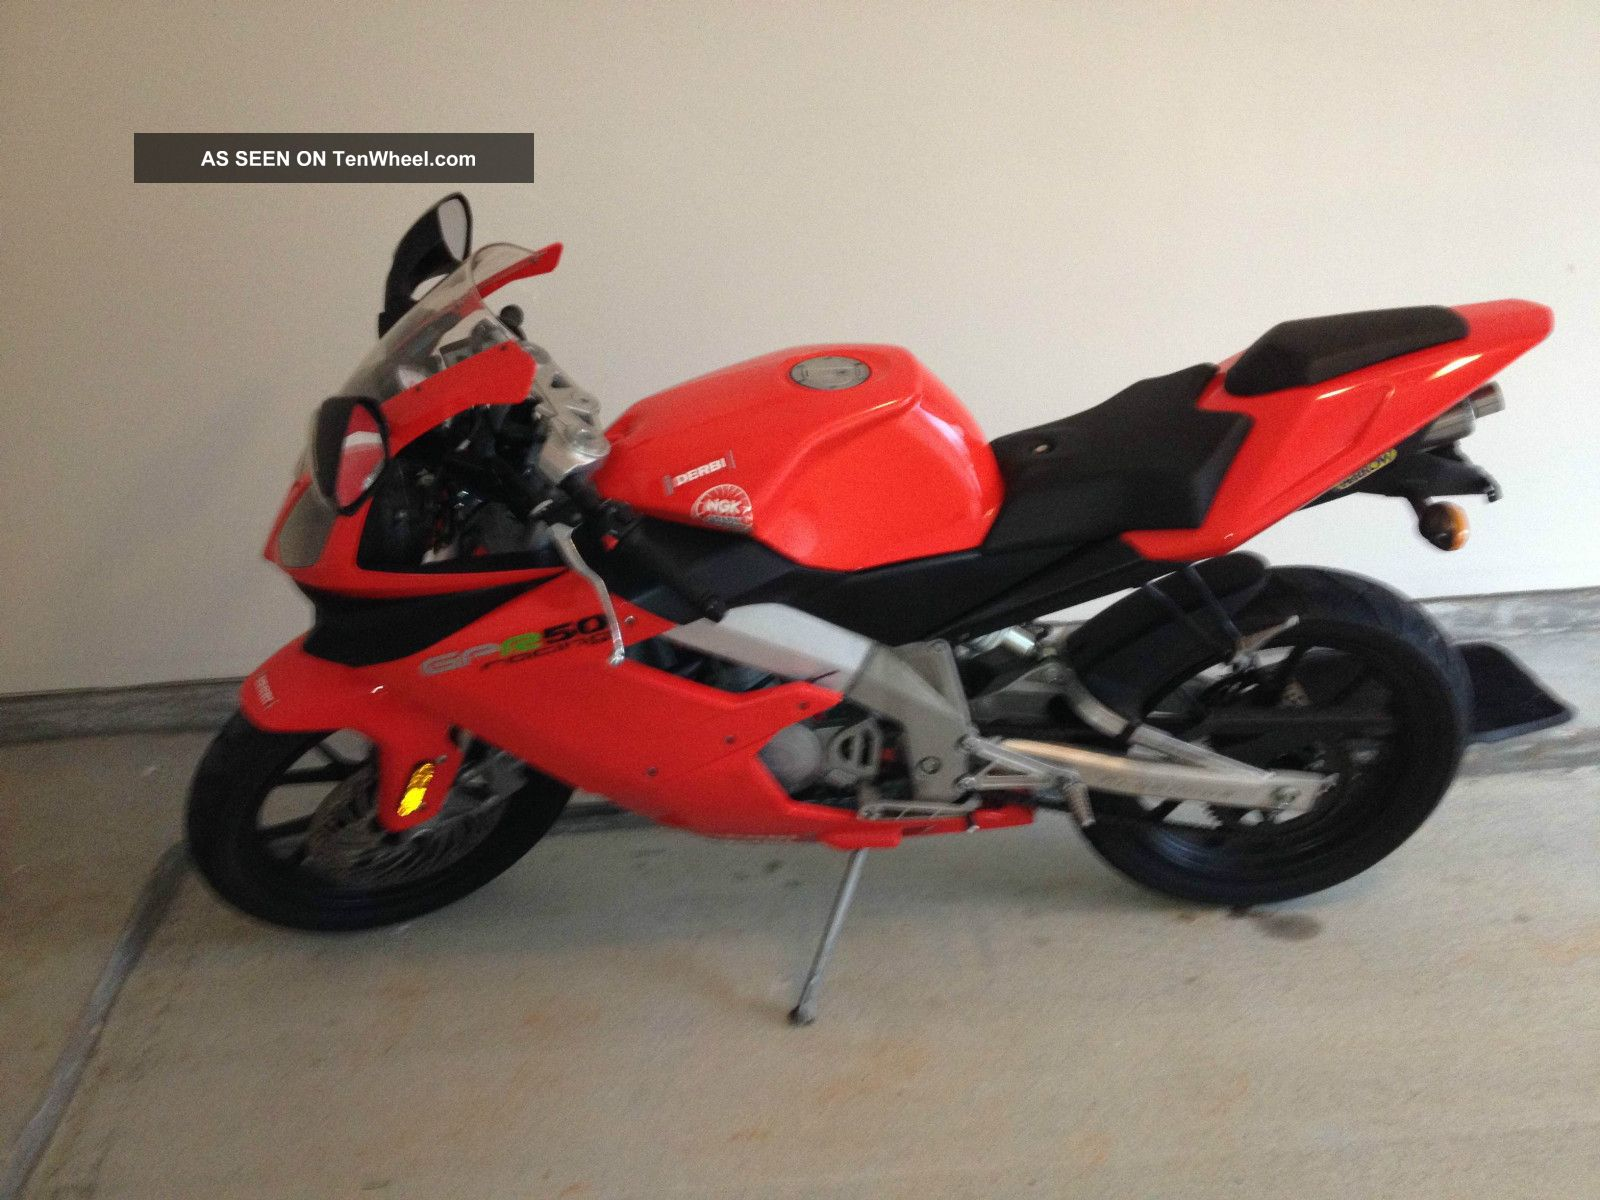 2005 Derbi Gpr 50cc Other Makes photo